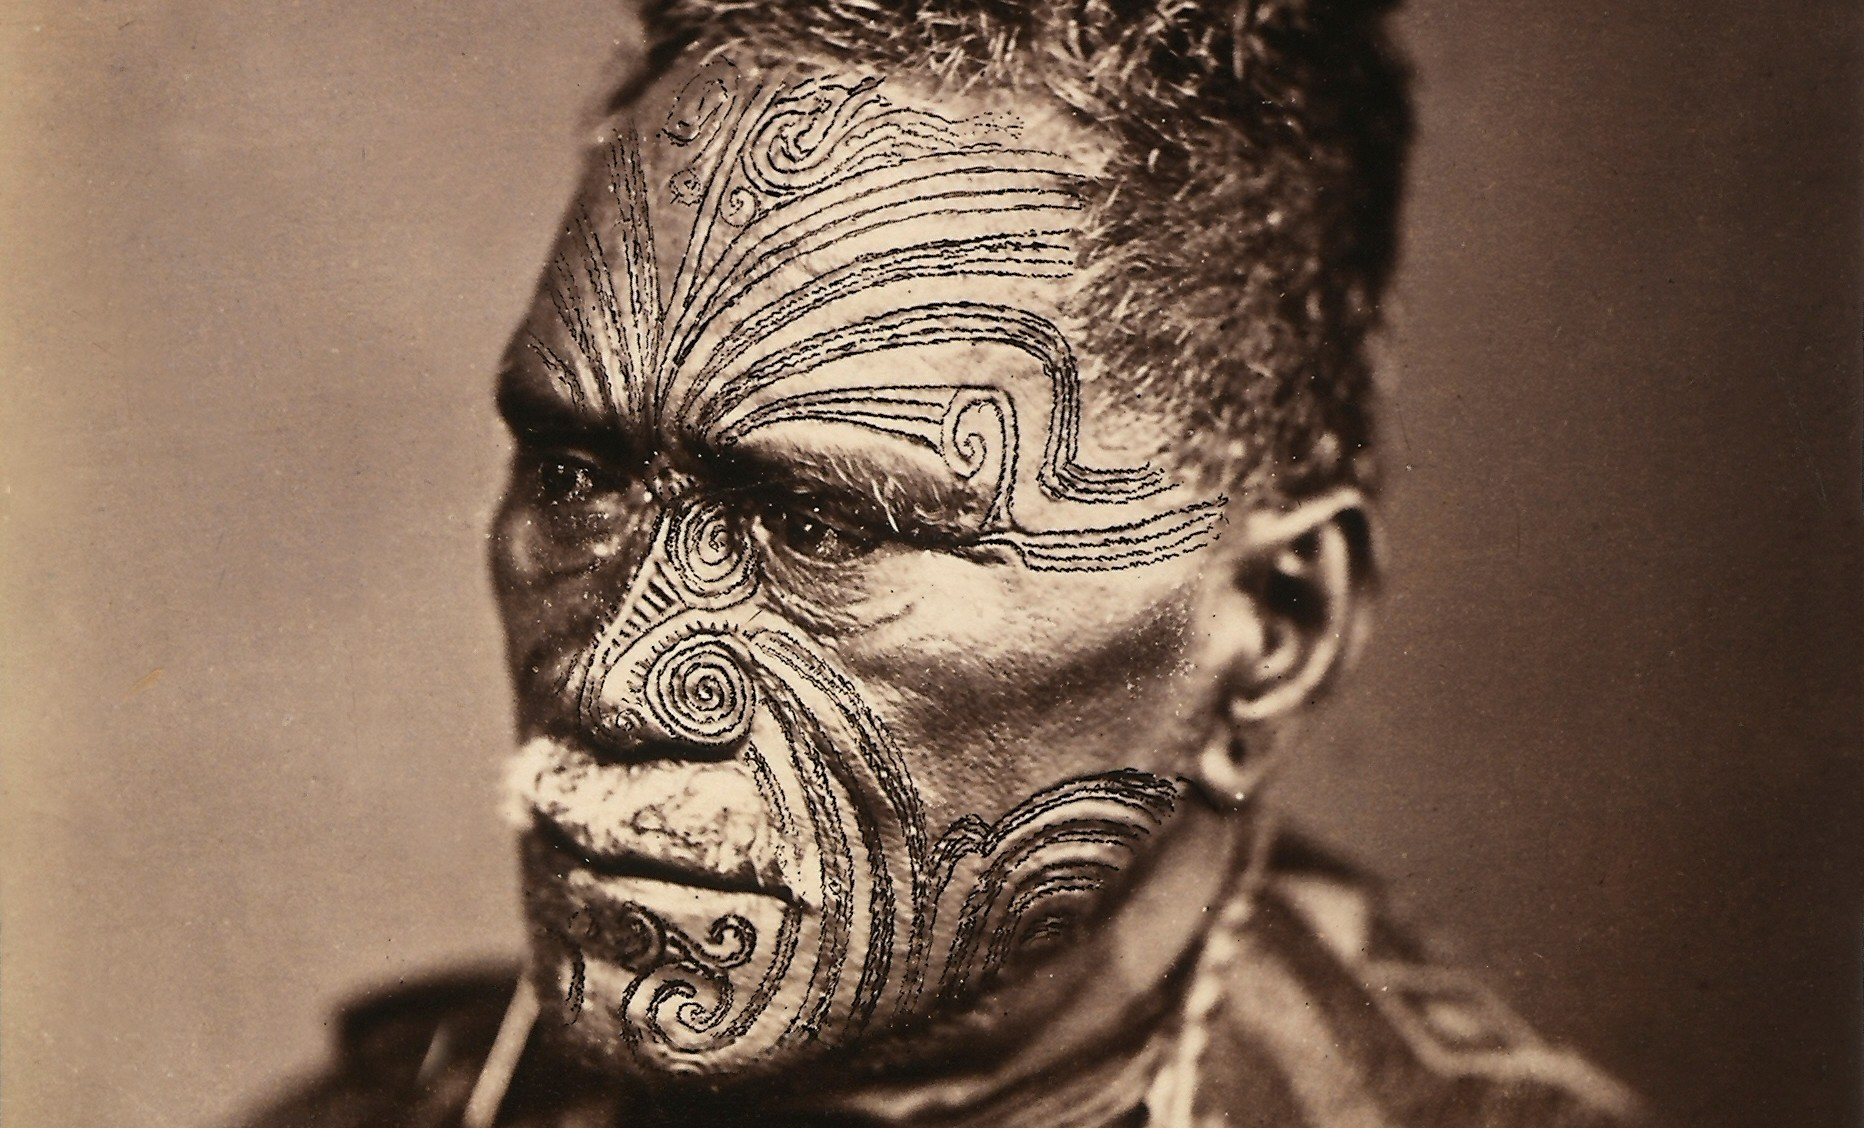 Portrait of a Maori with tattooed face